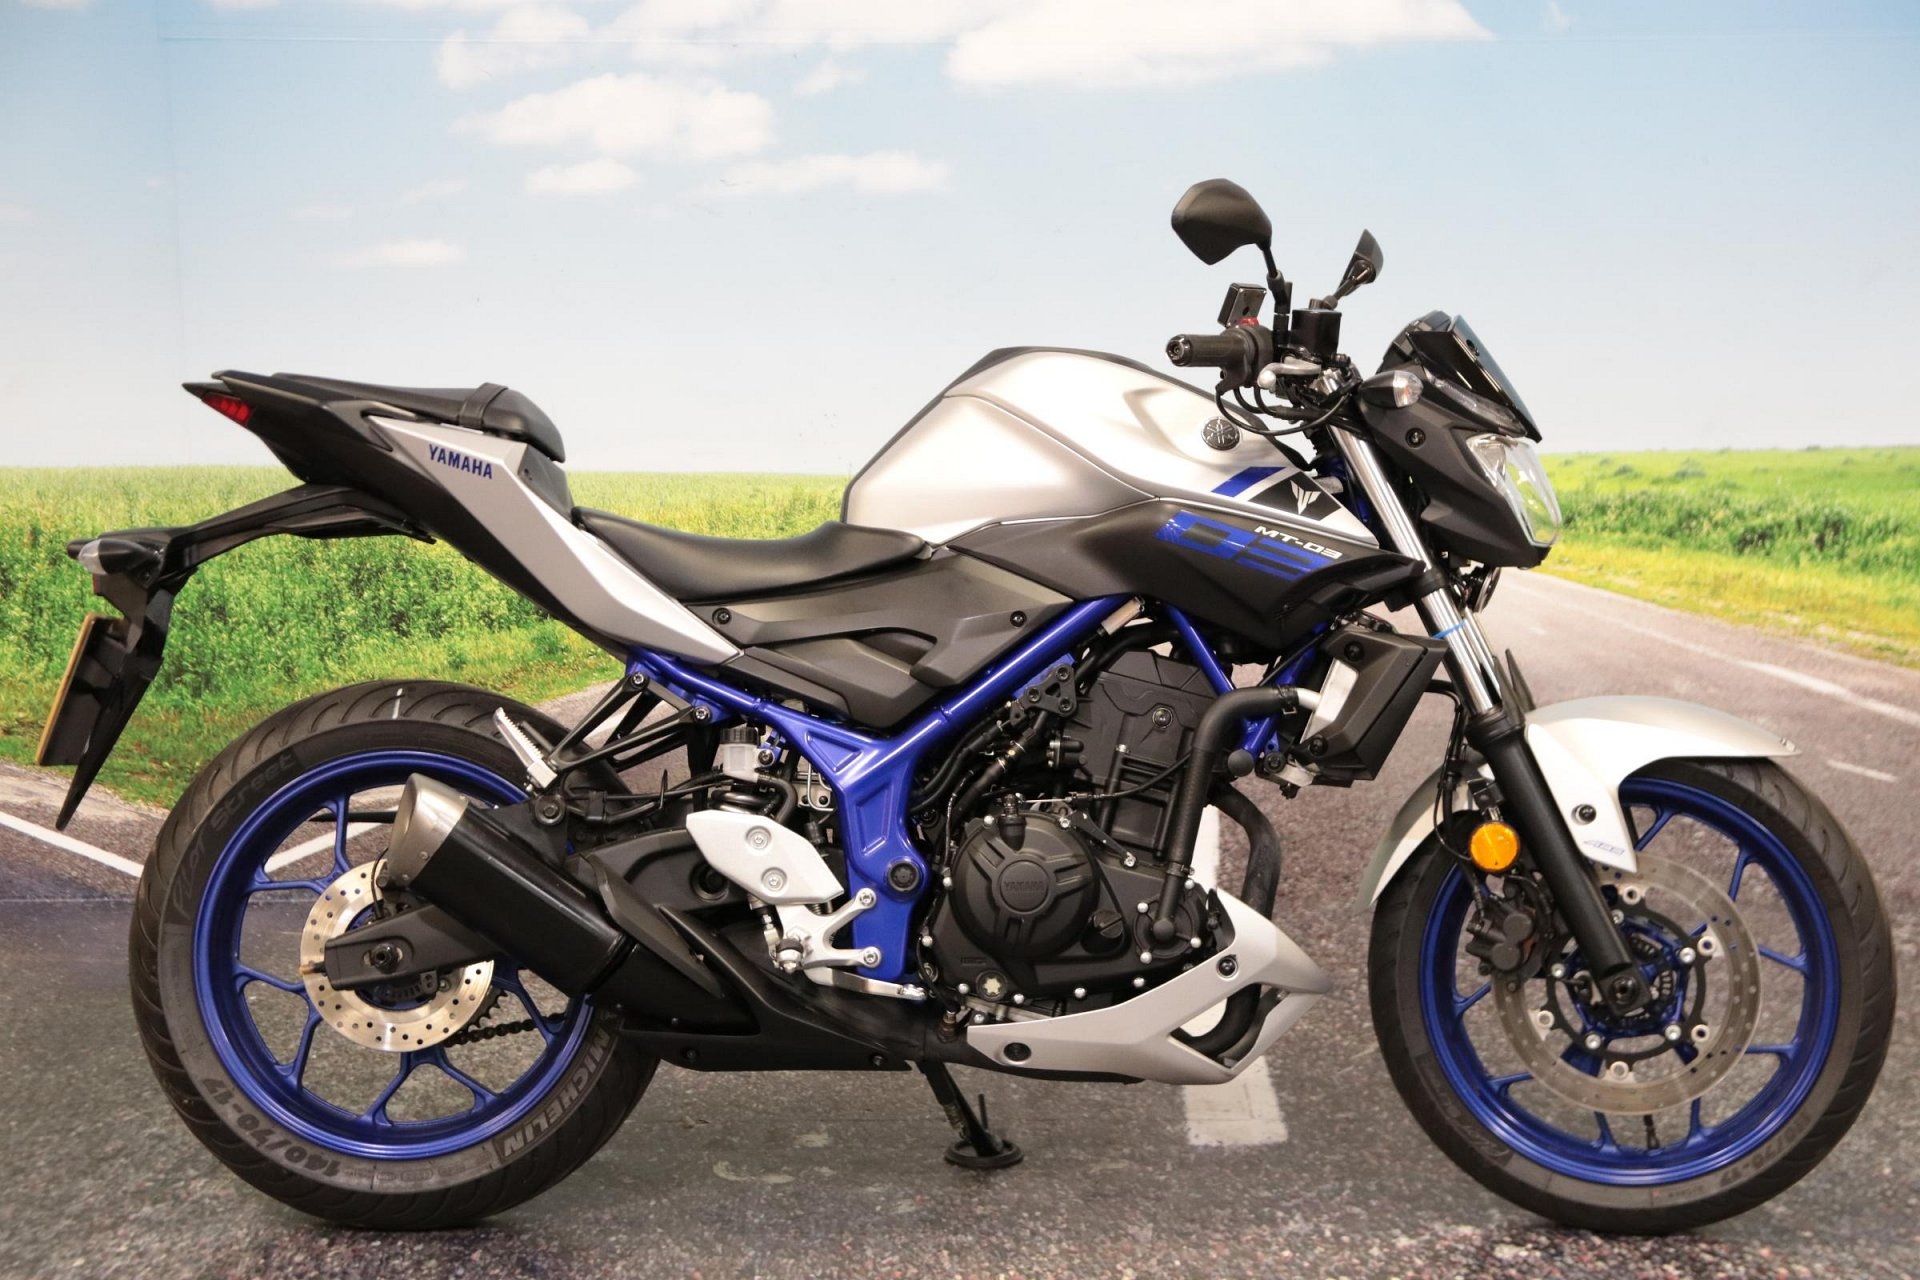 2016 Yamaha MT-03 ABS for sale in South Wales